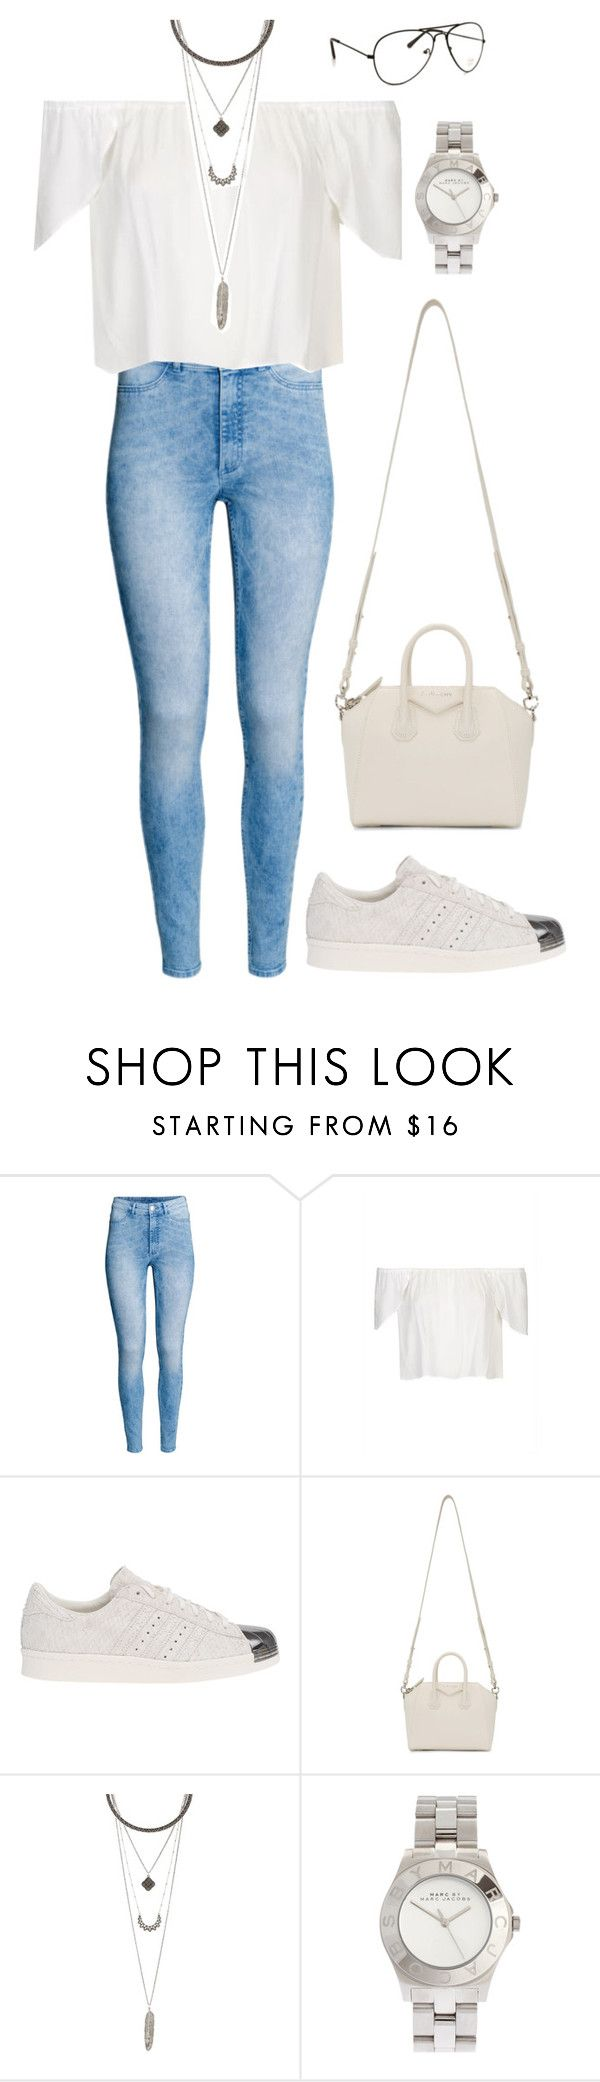 """""""Sans titre #1213"""" by frenchystyle ❤ liked on Polyvore featuring H&M, Topshop, adidas Originals, Givenchy, Charlotte Russe and Marc by Marc Jacobs"""